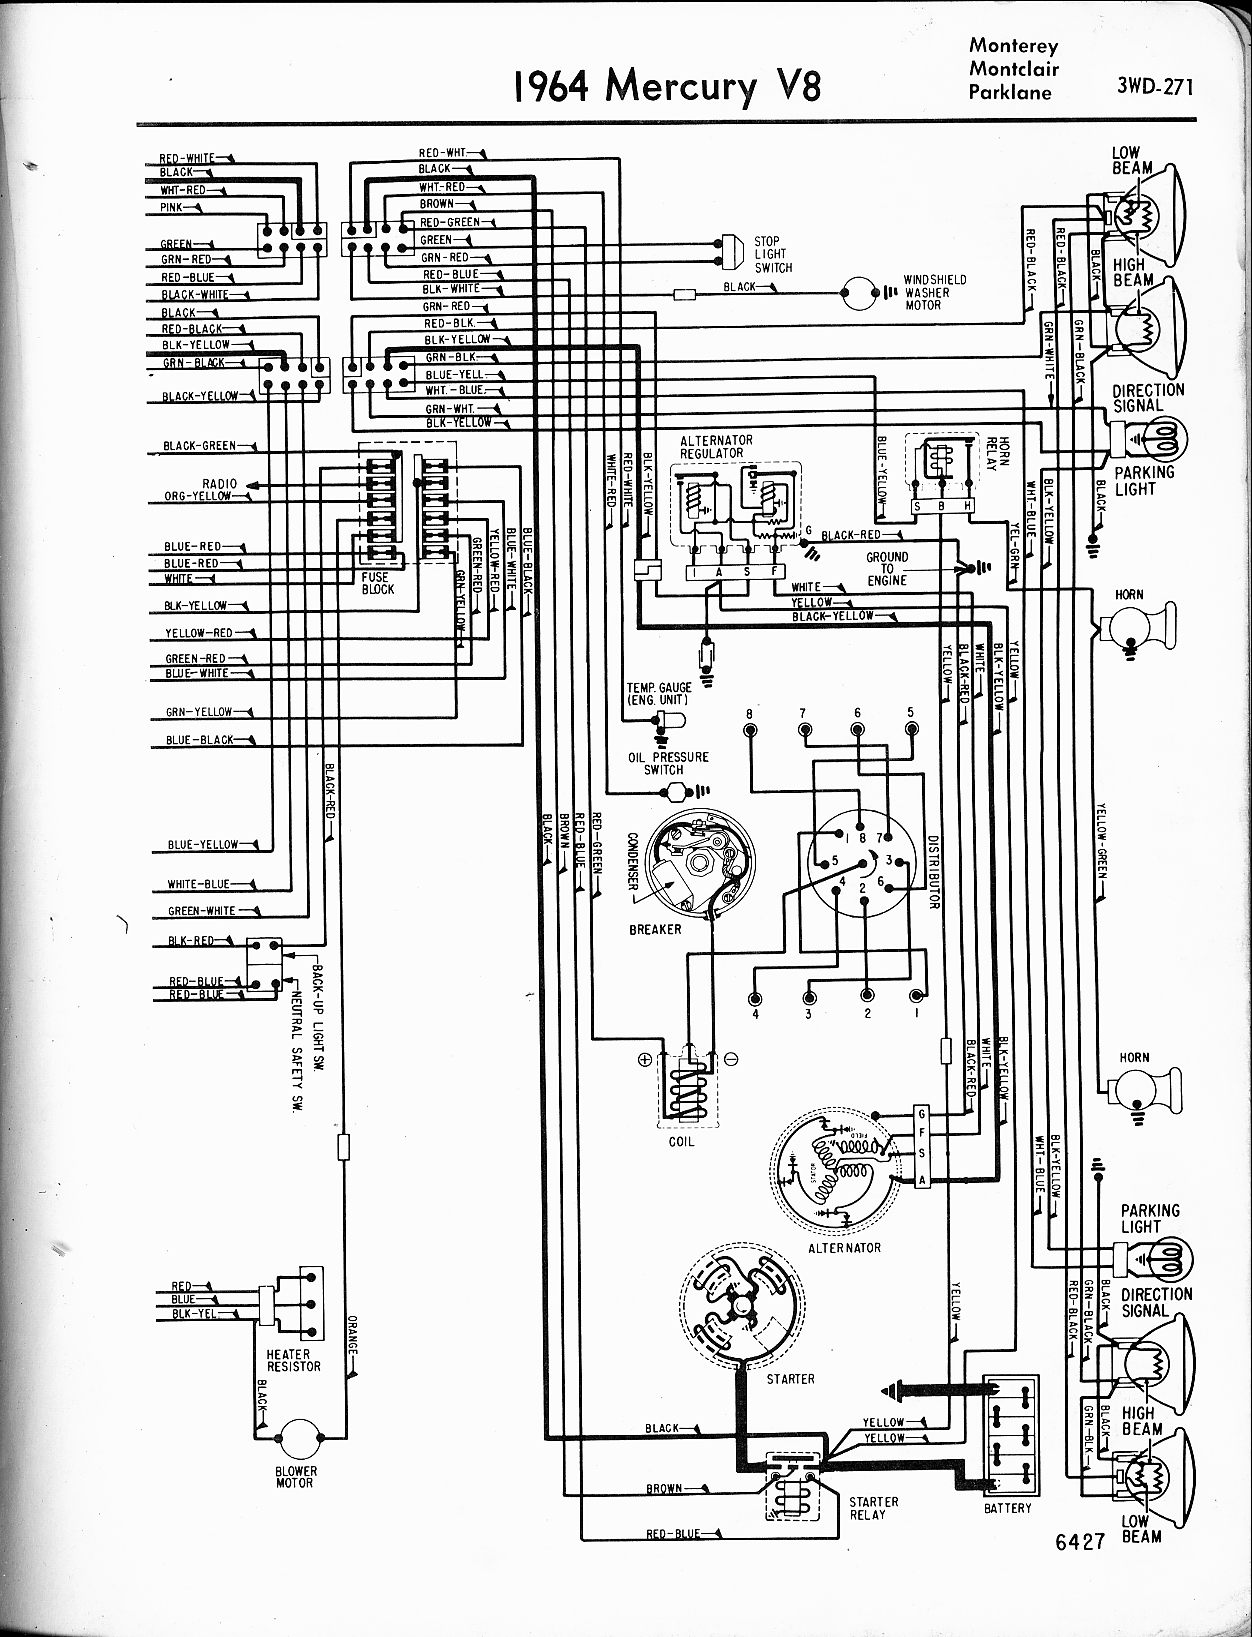 1966 Mercury Montclair Wiring Diagram on 1958 cadillac eldorado wiring diagram